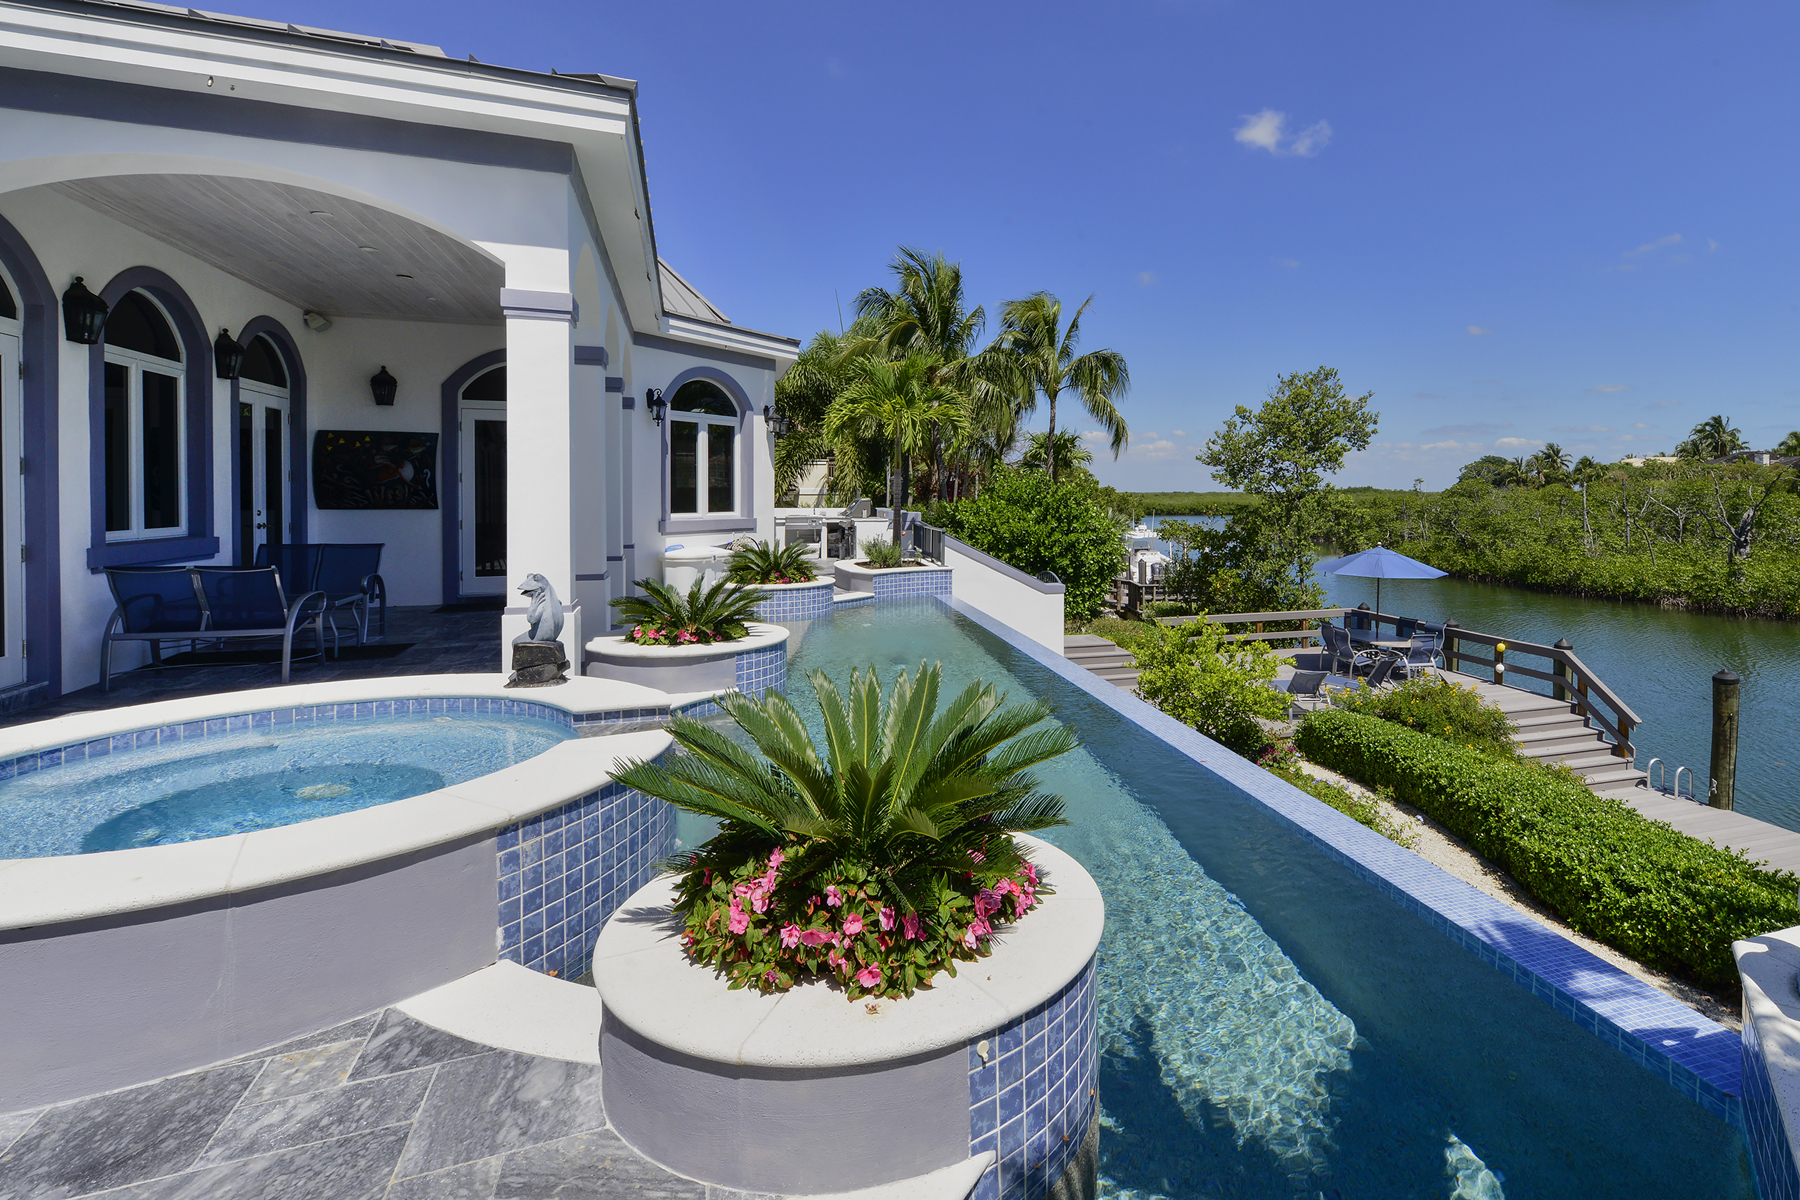 Maison unifamiliale pour l Vente à Custom Built Waterfront Home at Ocean Reef 17 North Pelican Drive Ocean Reef Community, Key Largo, Florida, 33037 États-Unis